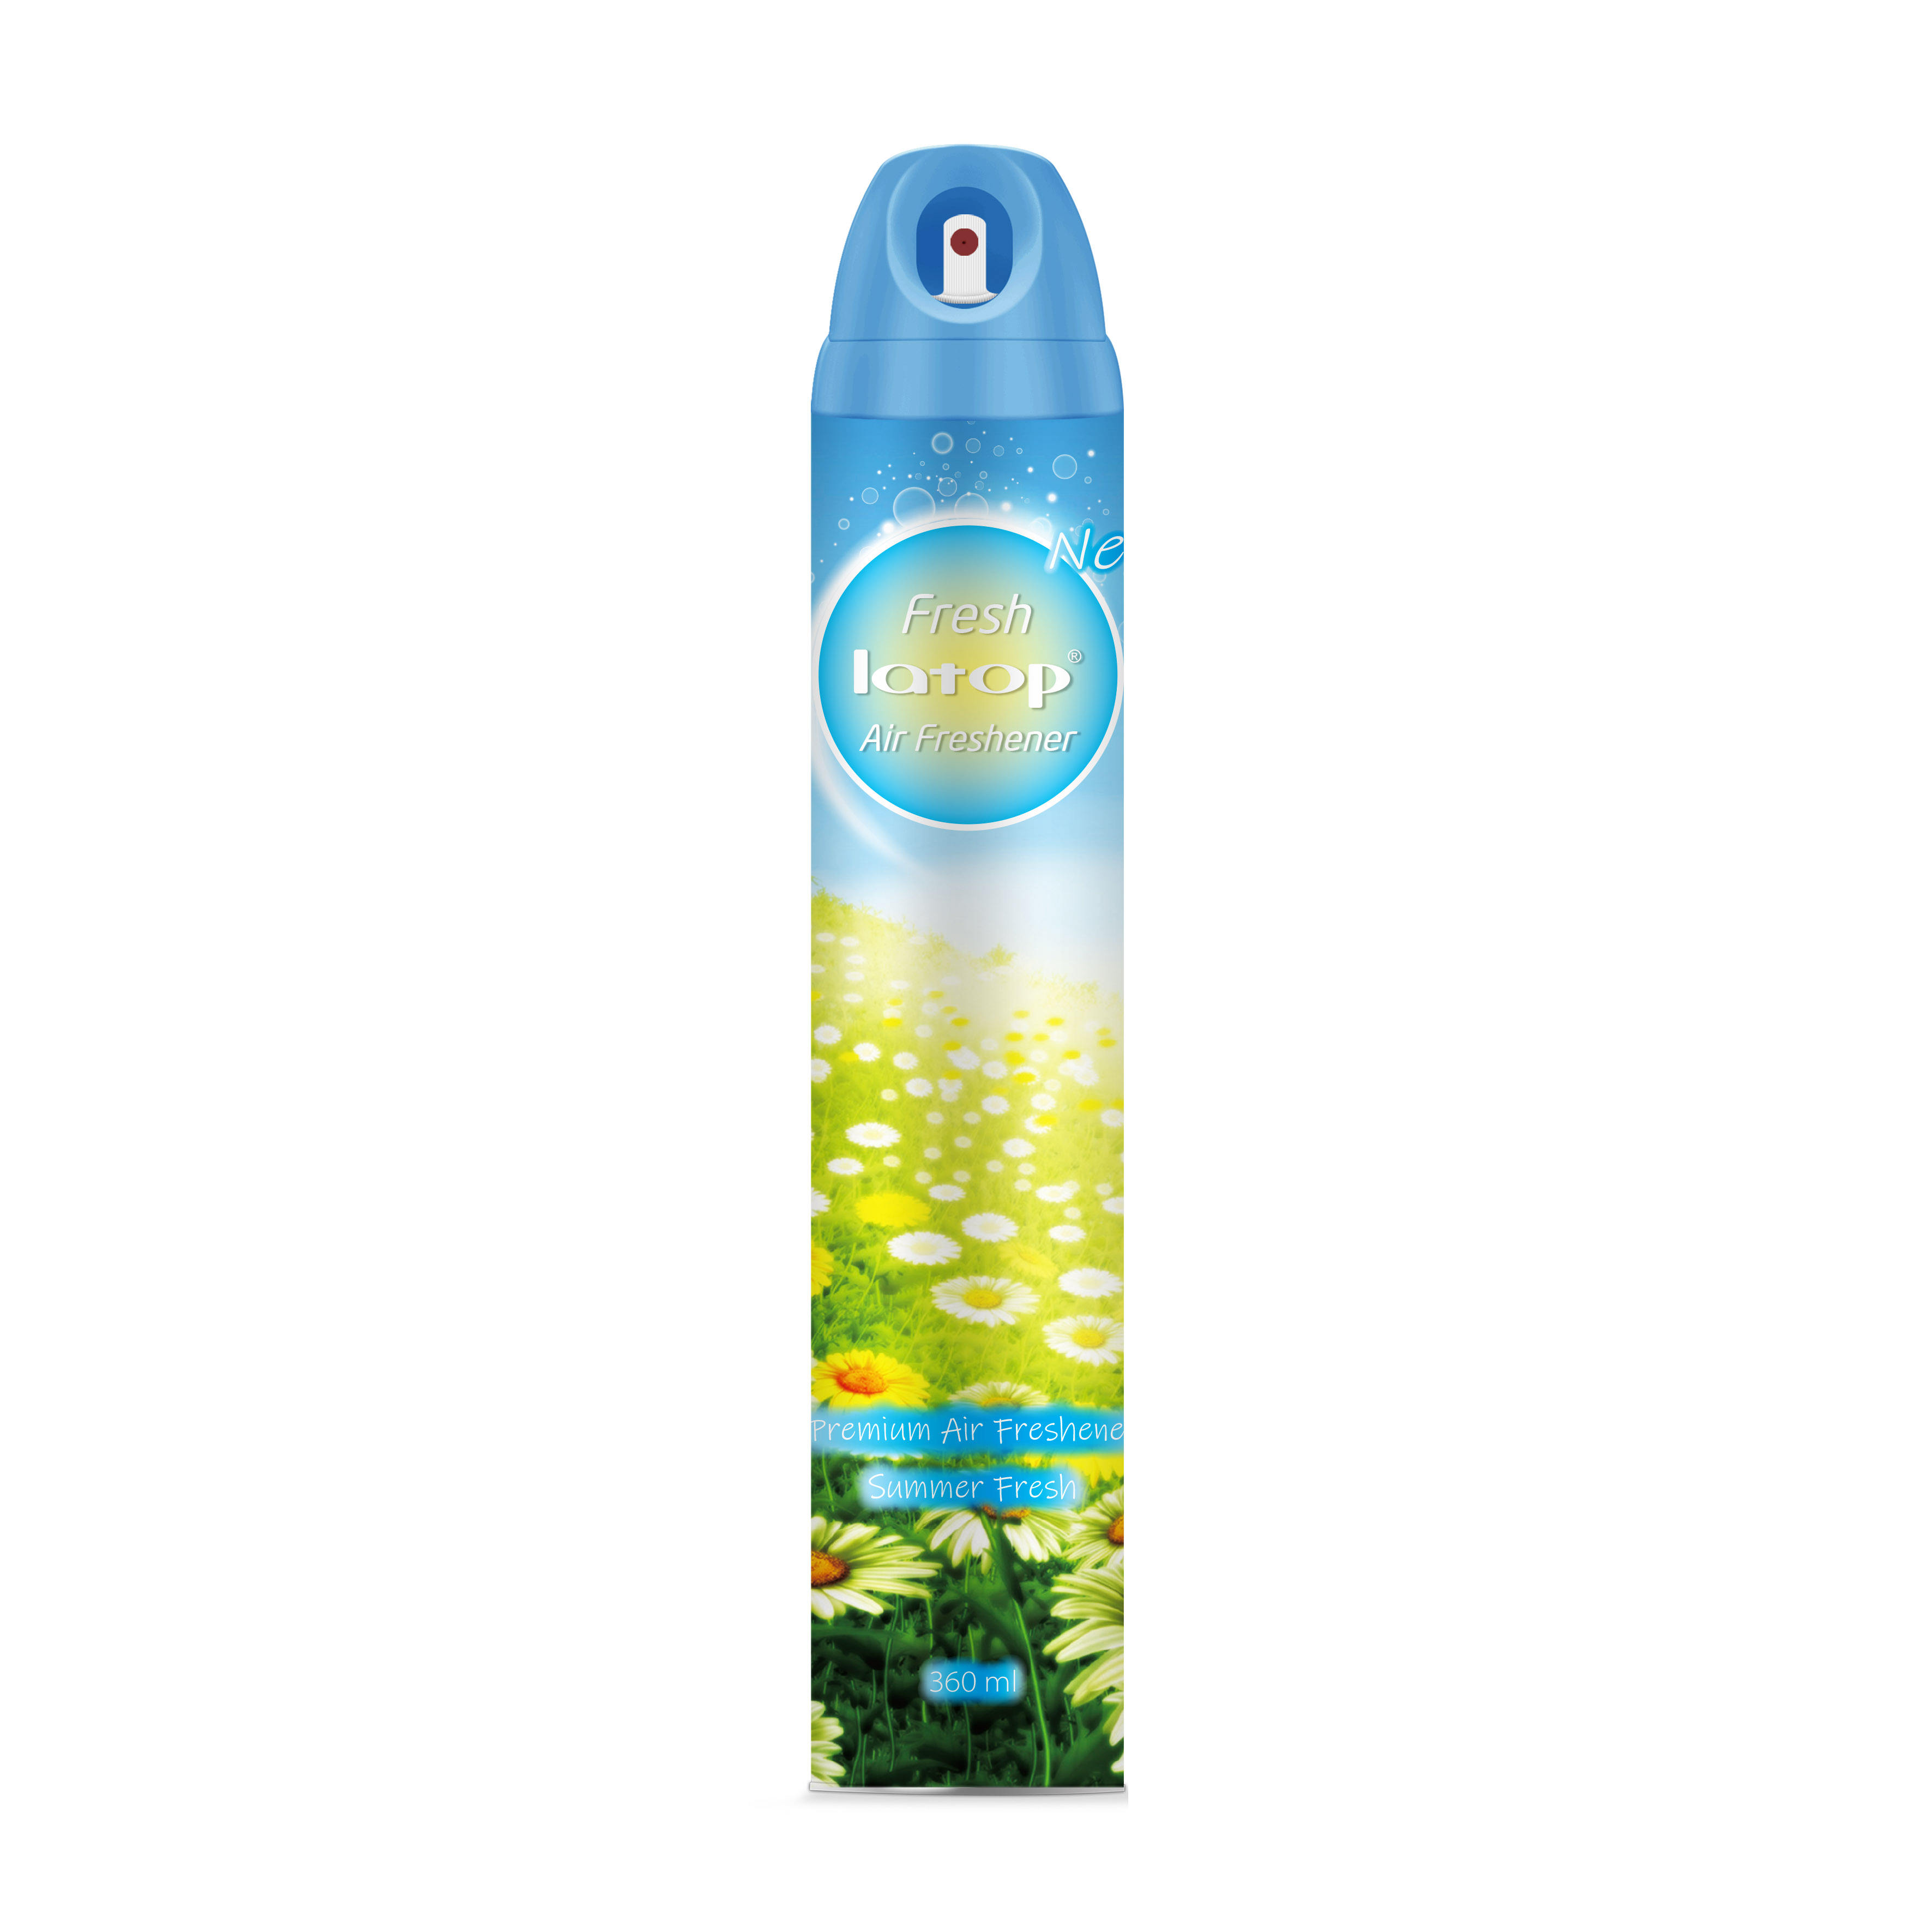 Wholesale 300 ml Multi-scented Room Aerosol Spray Alcohol Base Home Auto Private Label Air Freshener Spray